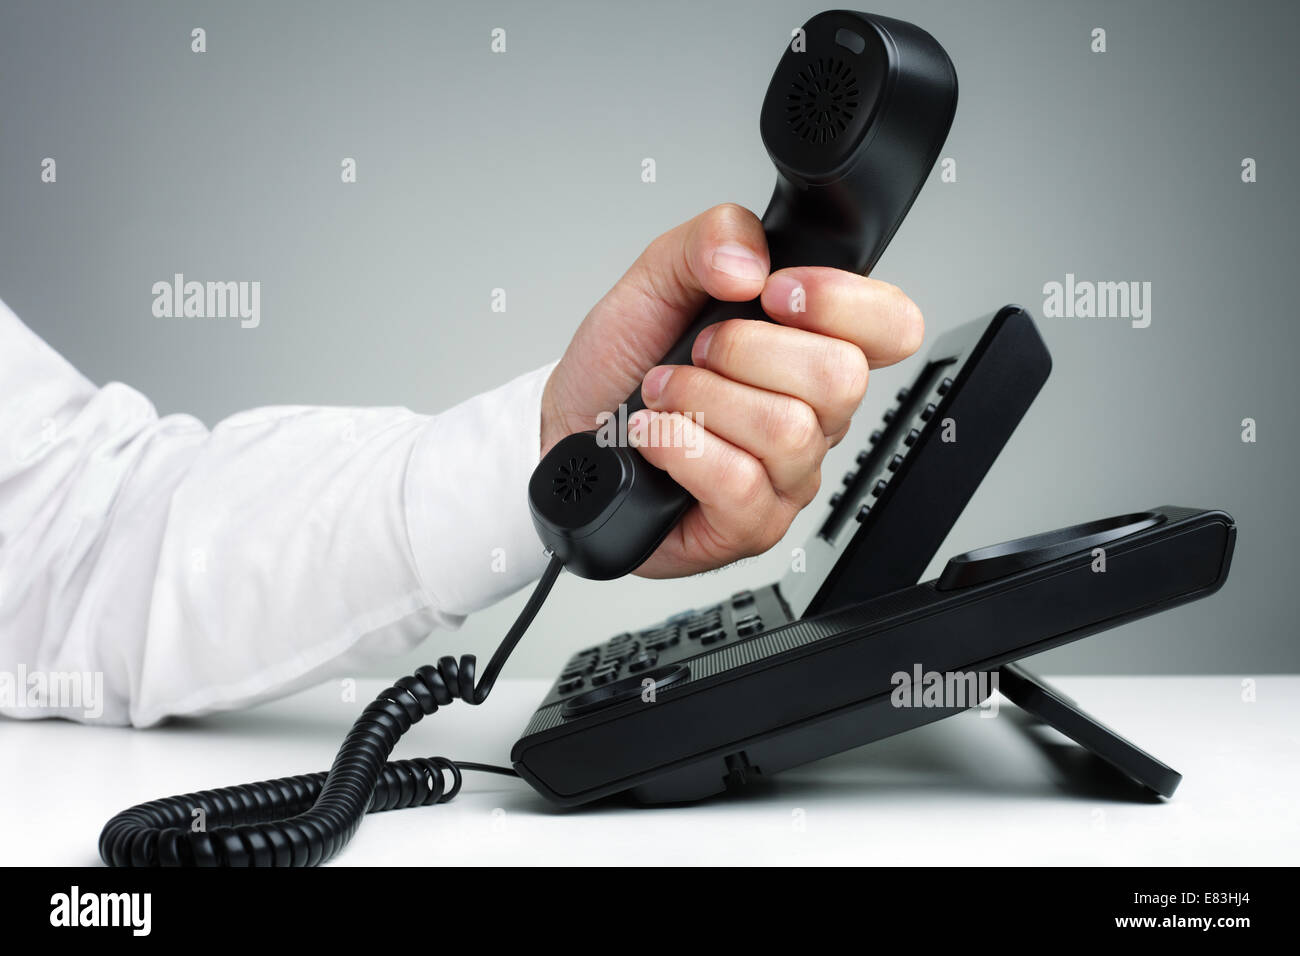 Business telephone - Stock Image